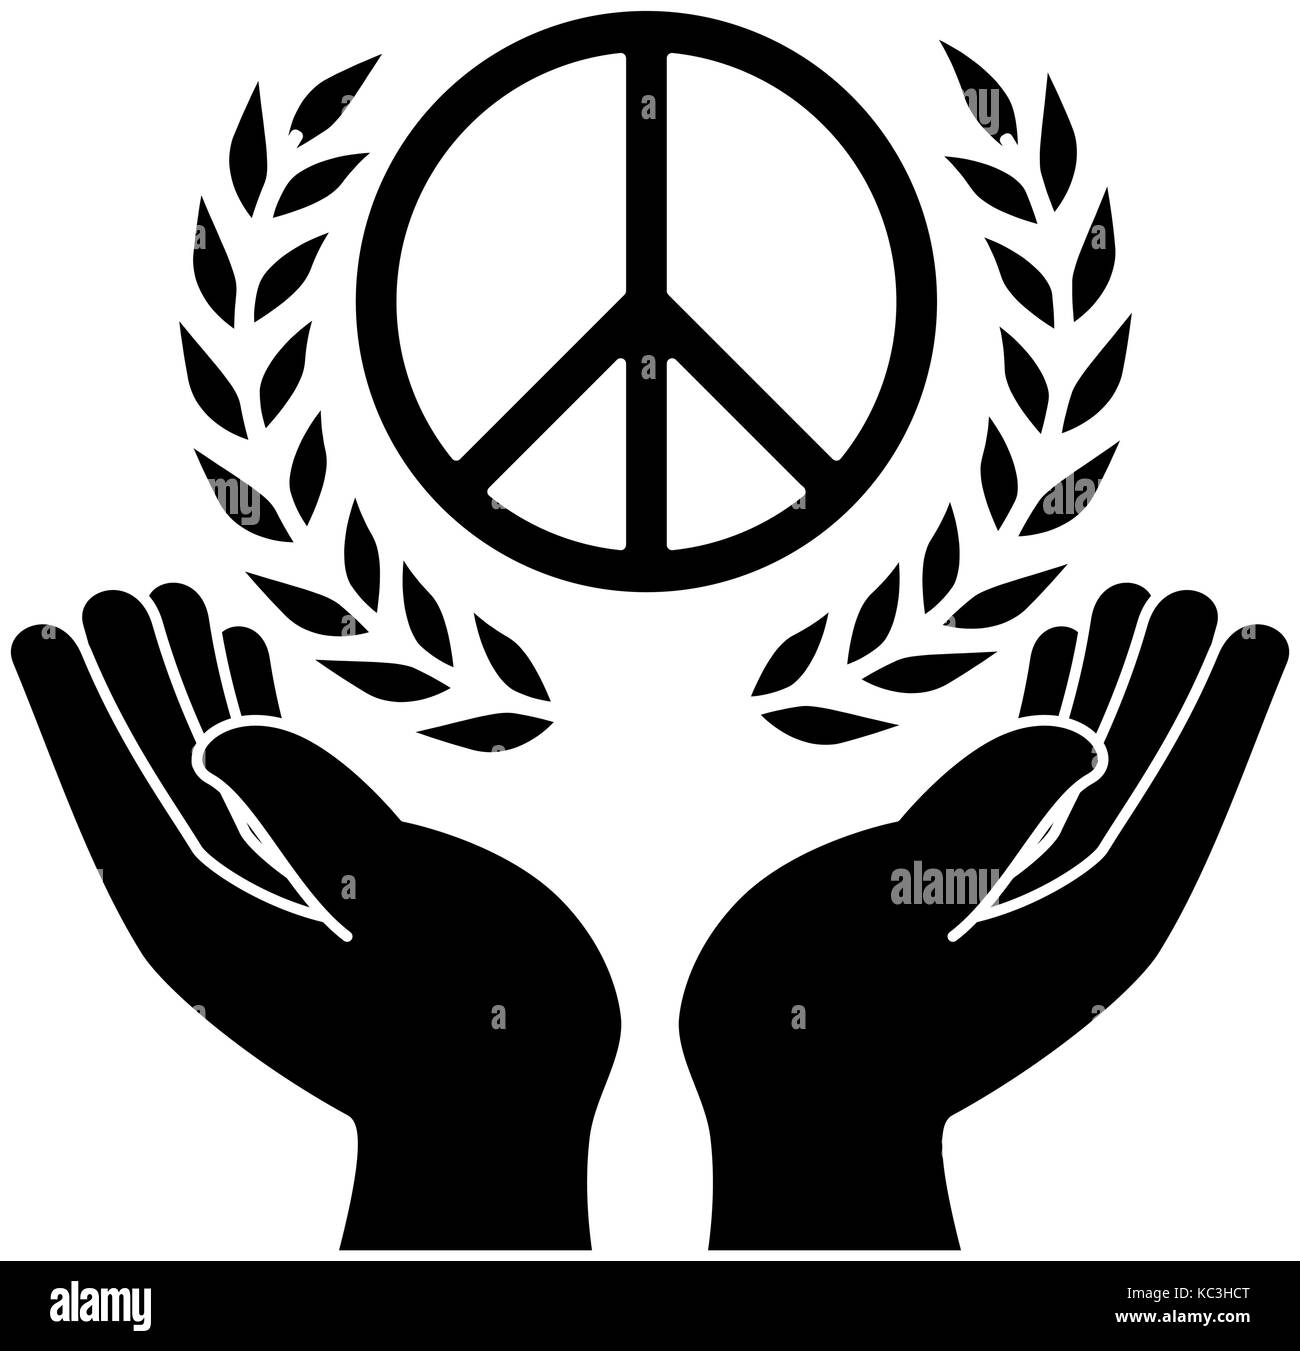 Hands Human Protection With Peace And Love Symbol Vector